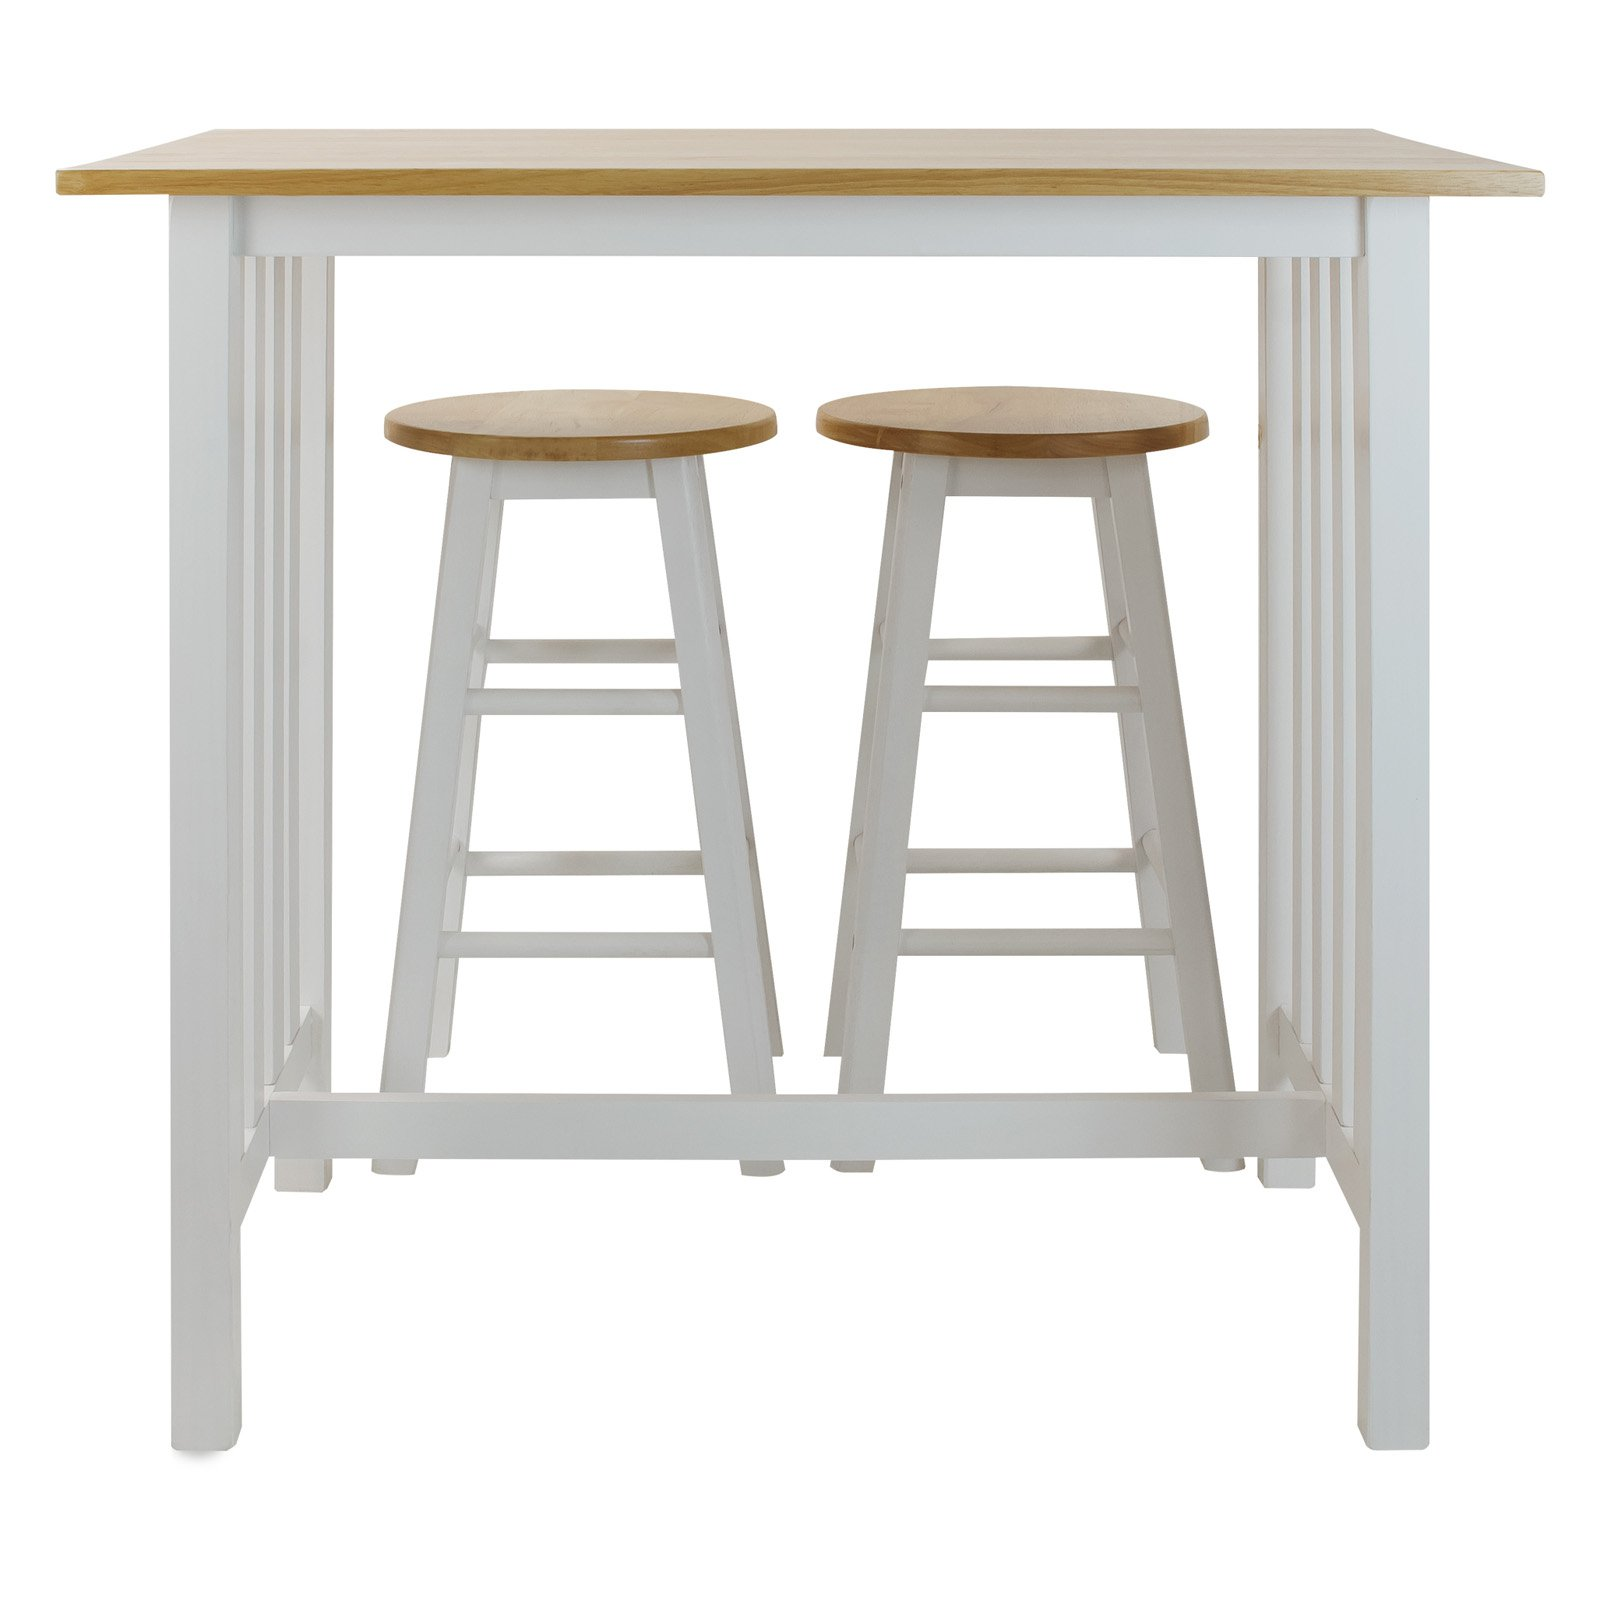 High Quality 3pcs Breakfast Set Made With Solid Wood White   Walmart.com Home Design Ideas